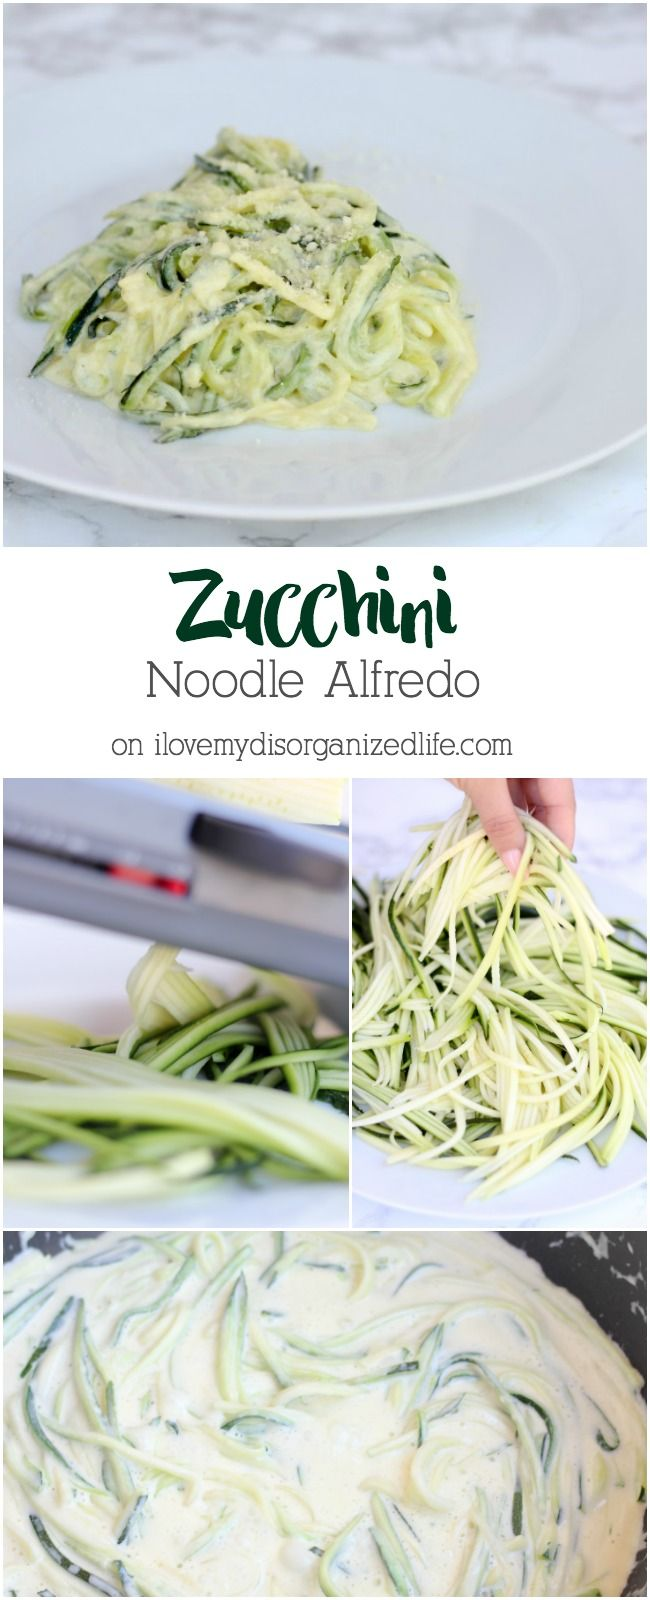 This low-carb Zucchini noodle Alfredo recipe is rich, creamy and totally cheesy. It's so good, you'll feel like you're cheating!